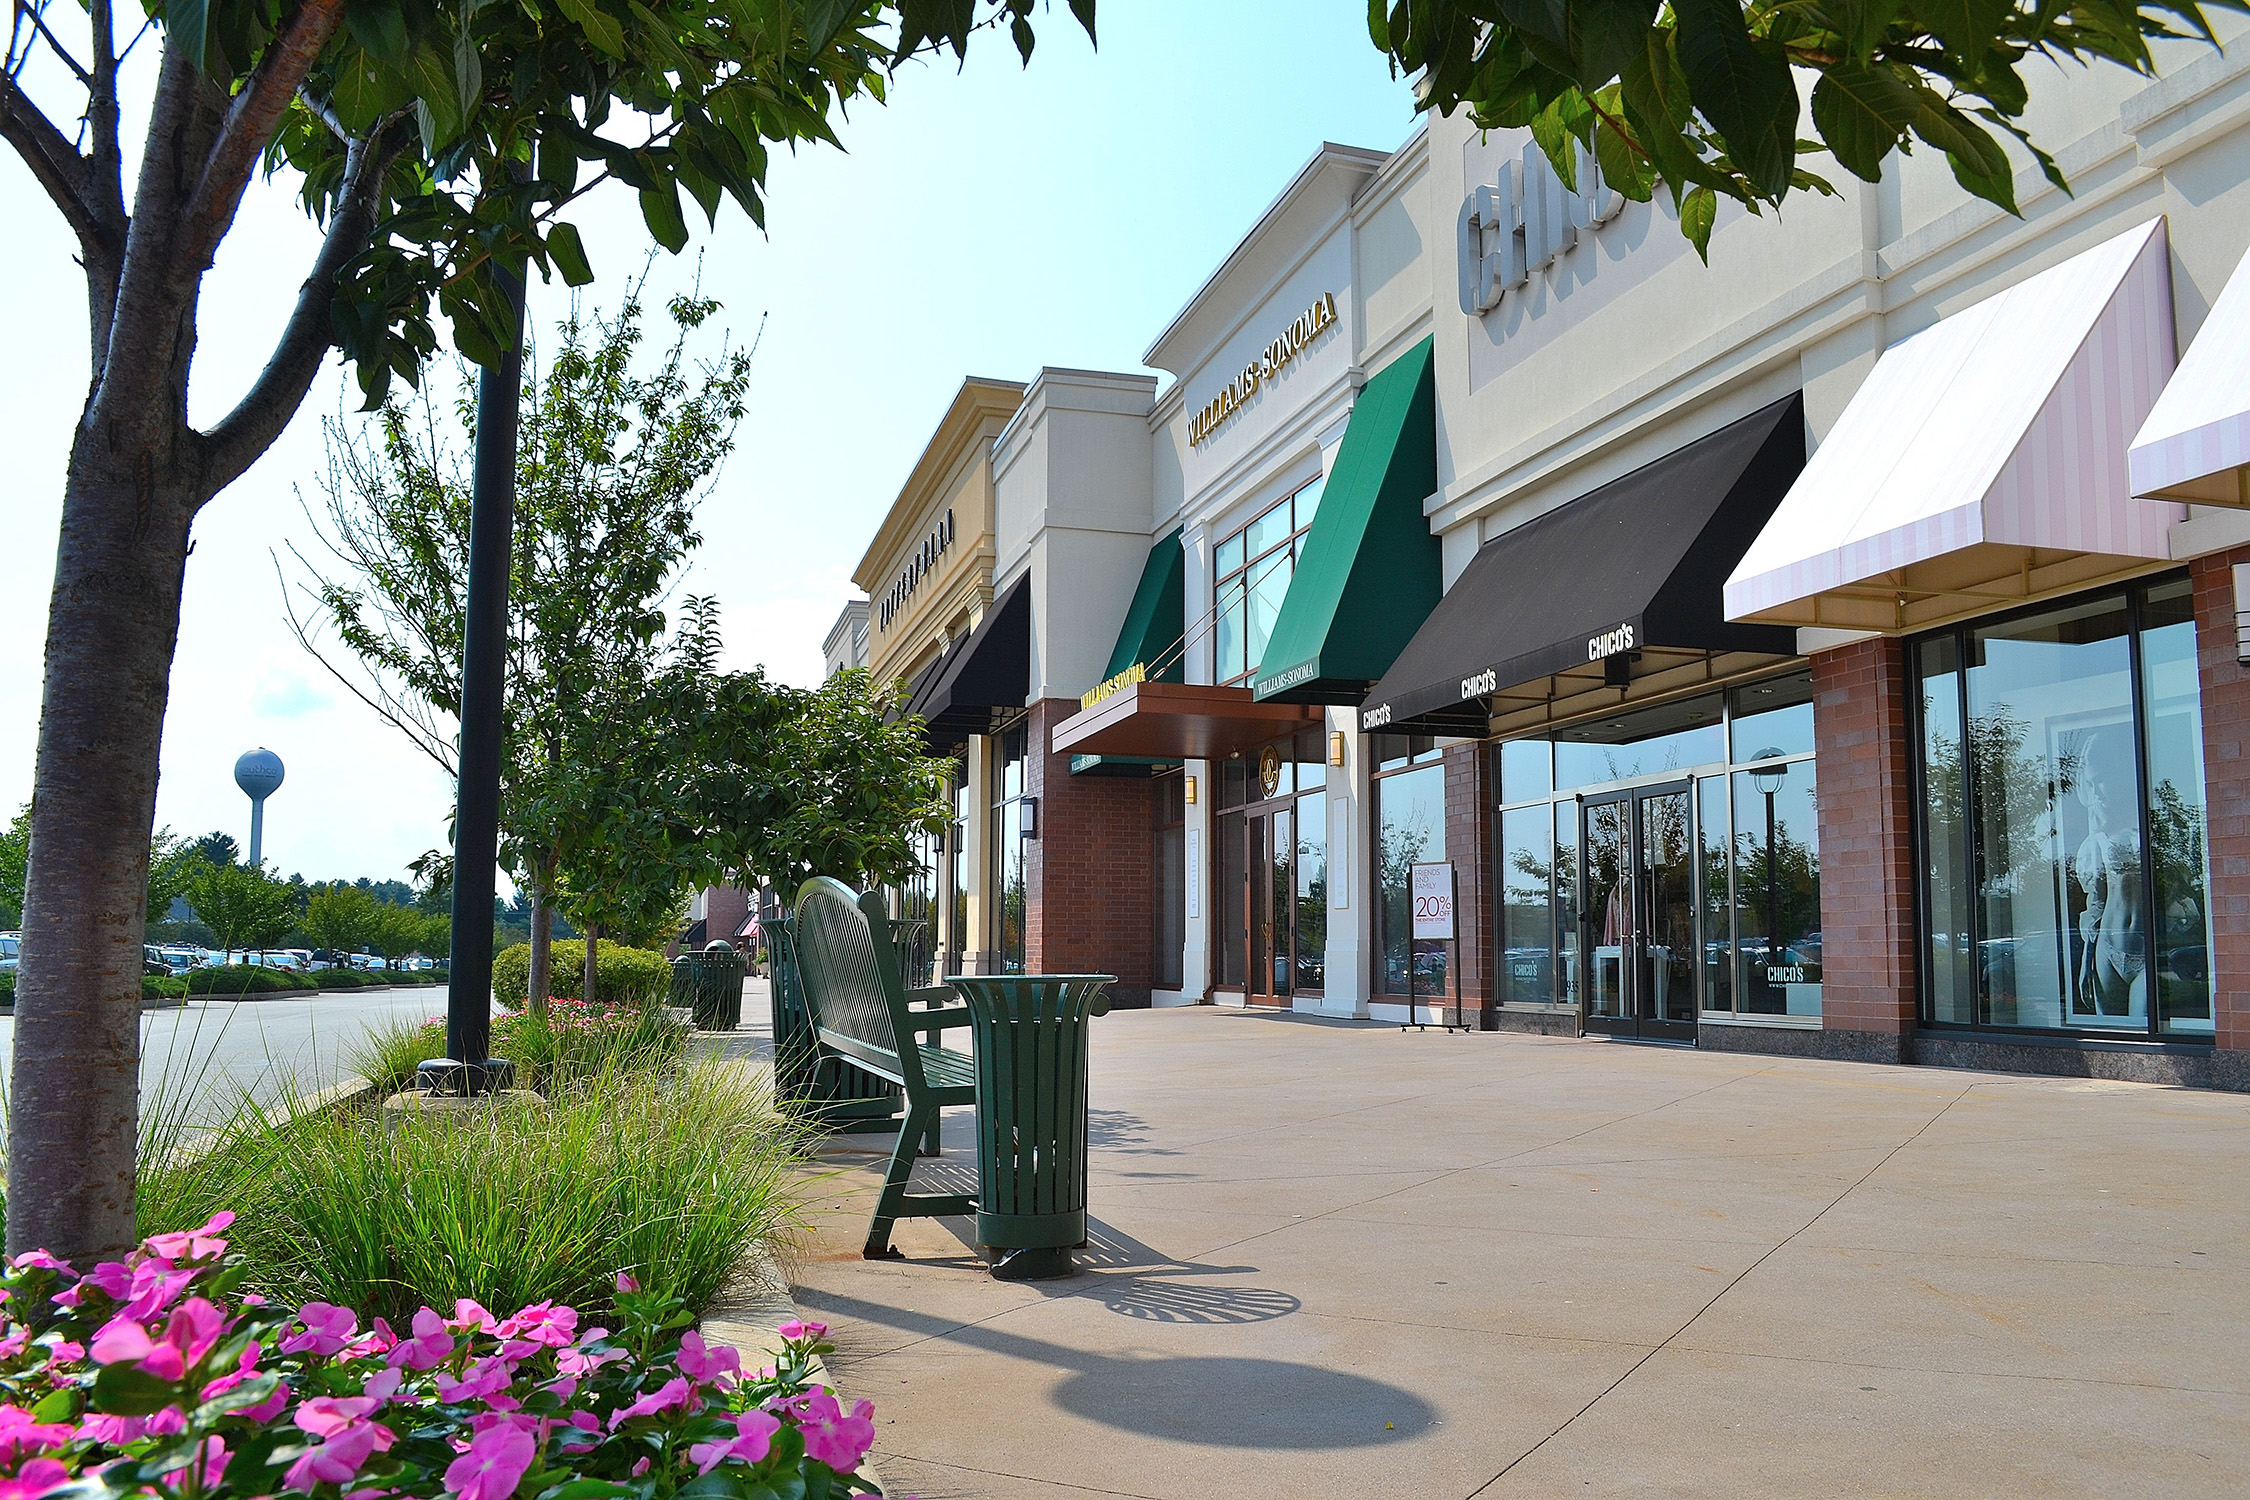 The The Shoppes at Brinton Lake, Glen Mills, Pennsylvania